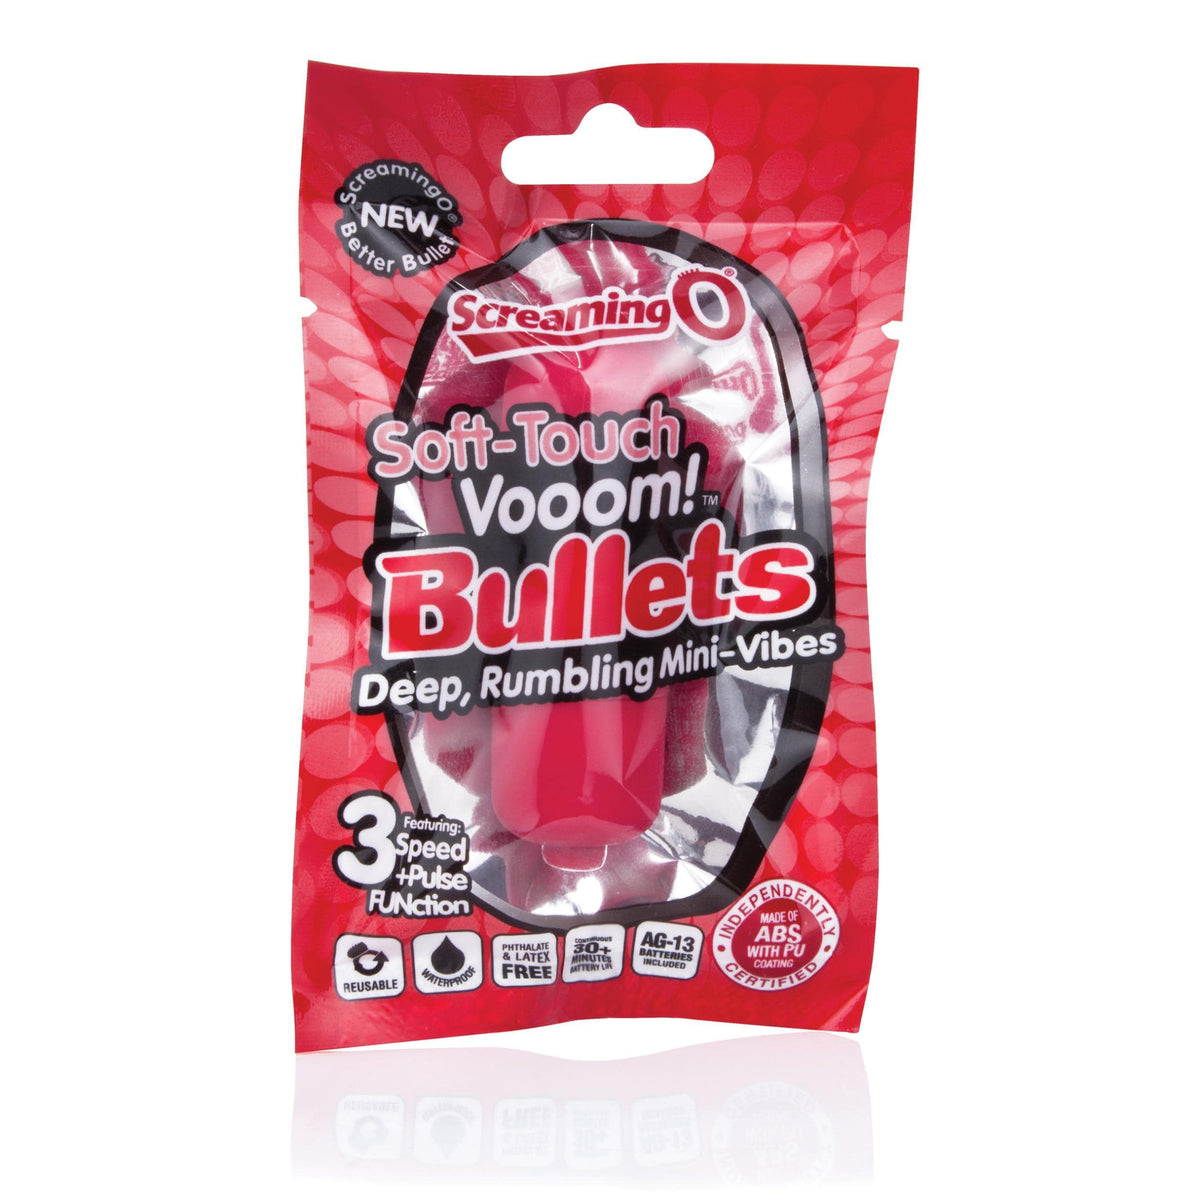 soft touch vooom bullets red